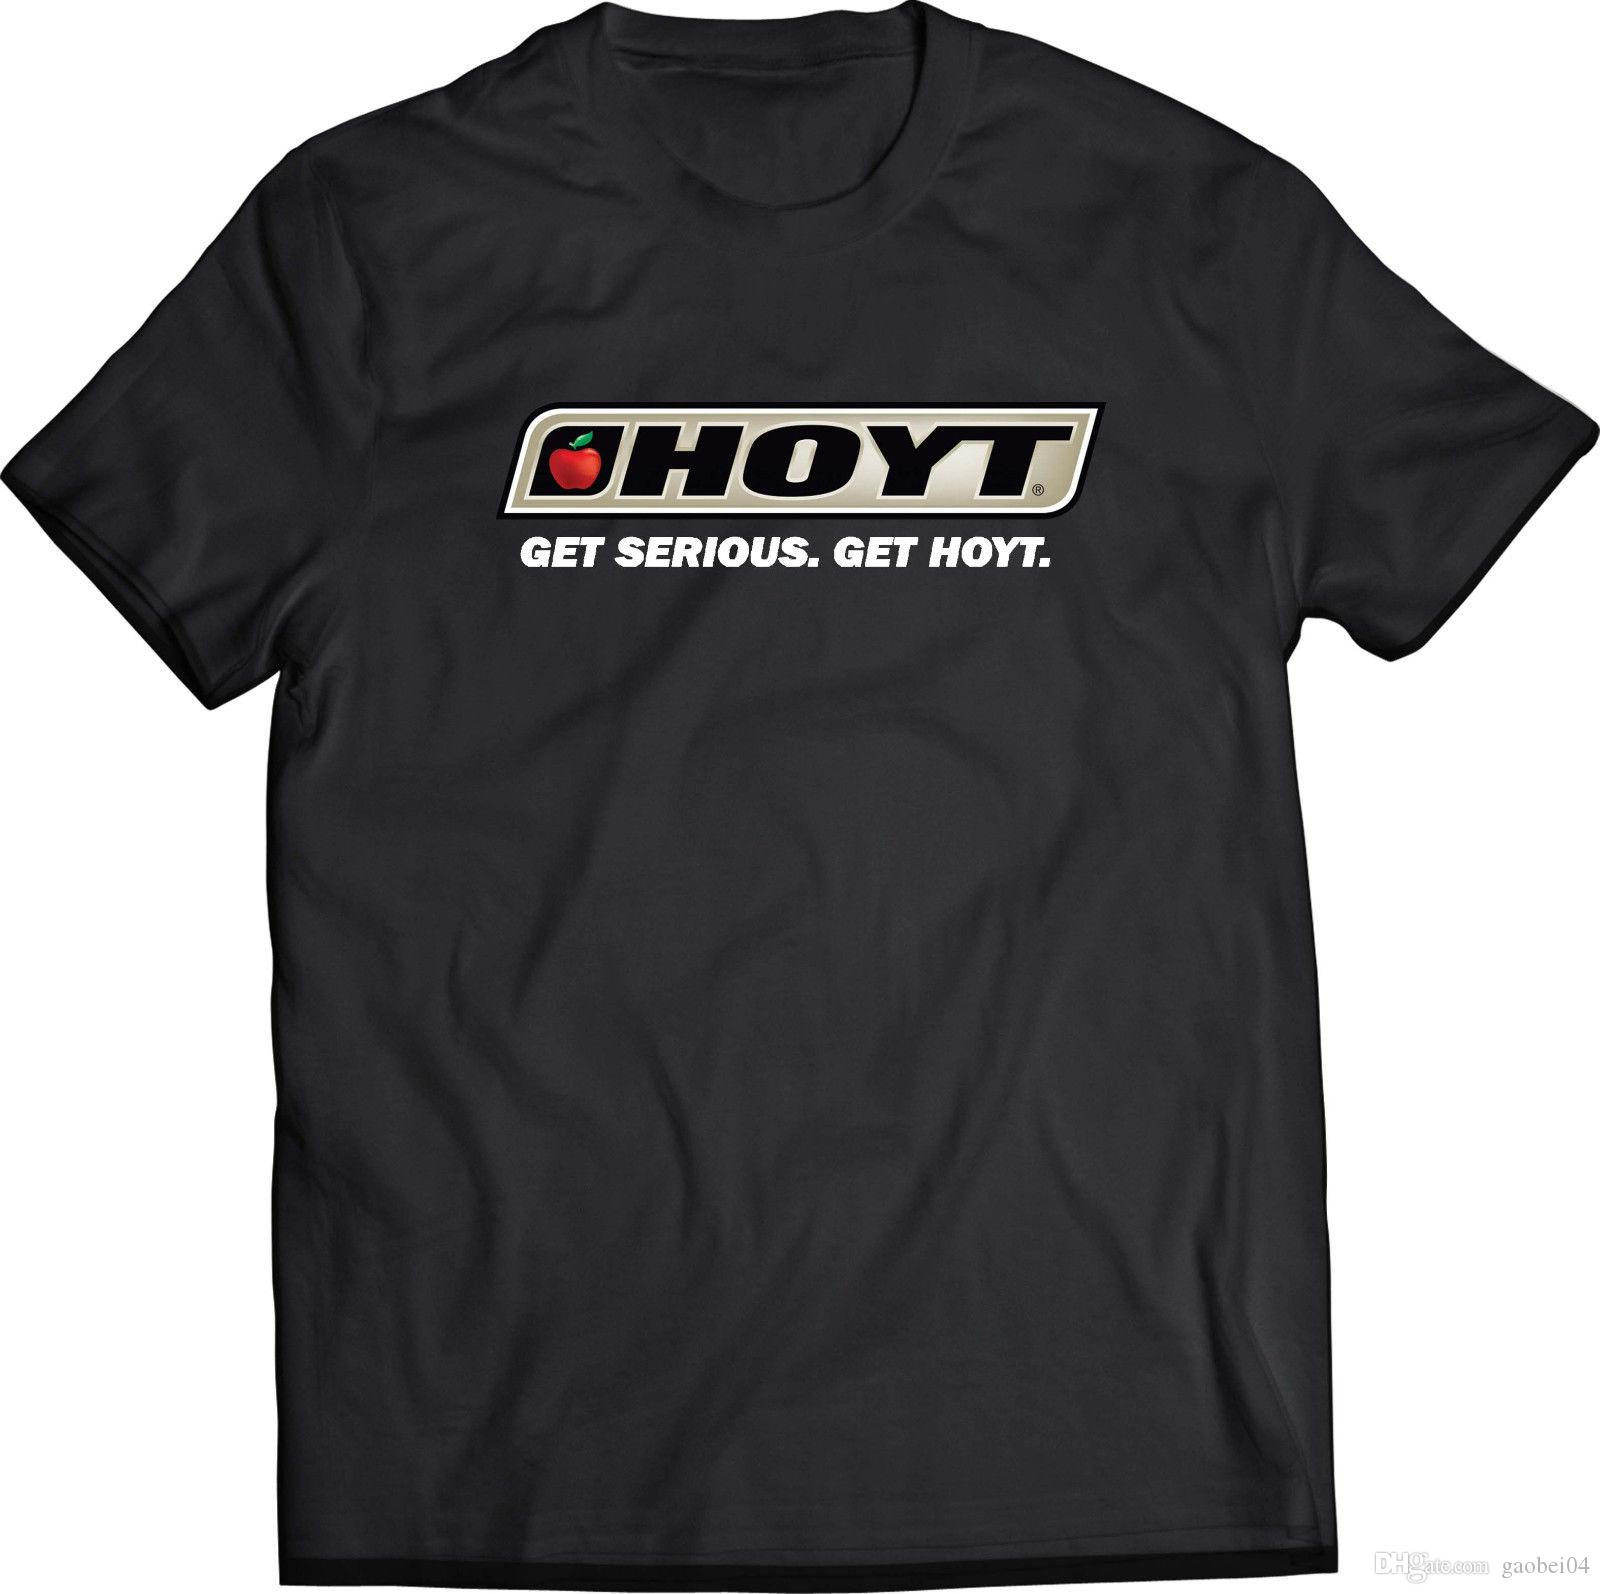 Hoyt Custom Black T-shirt USA Size Men/'s